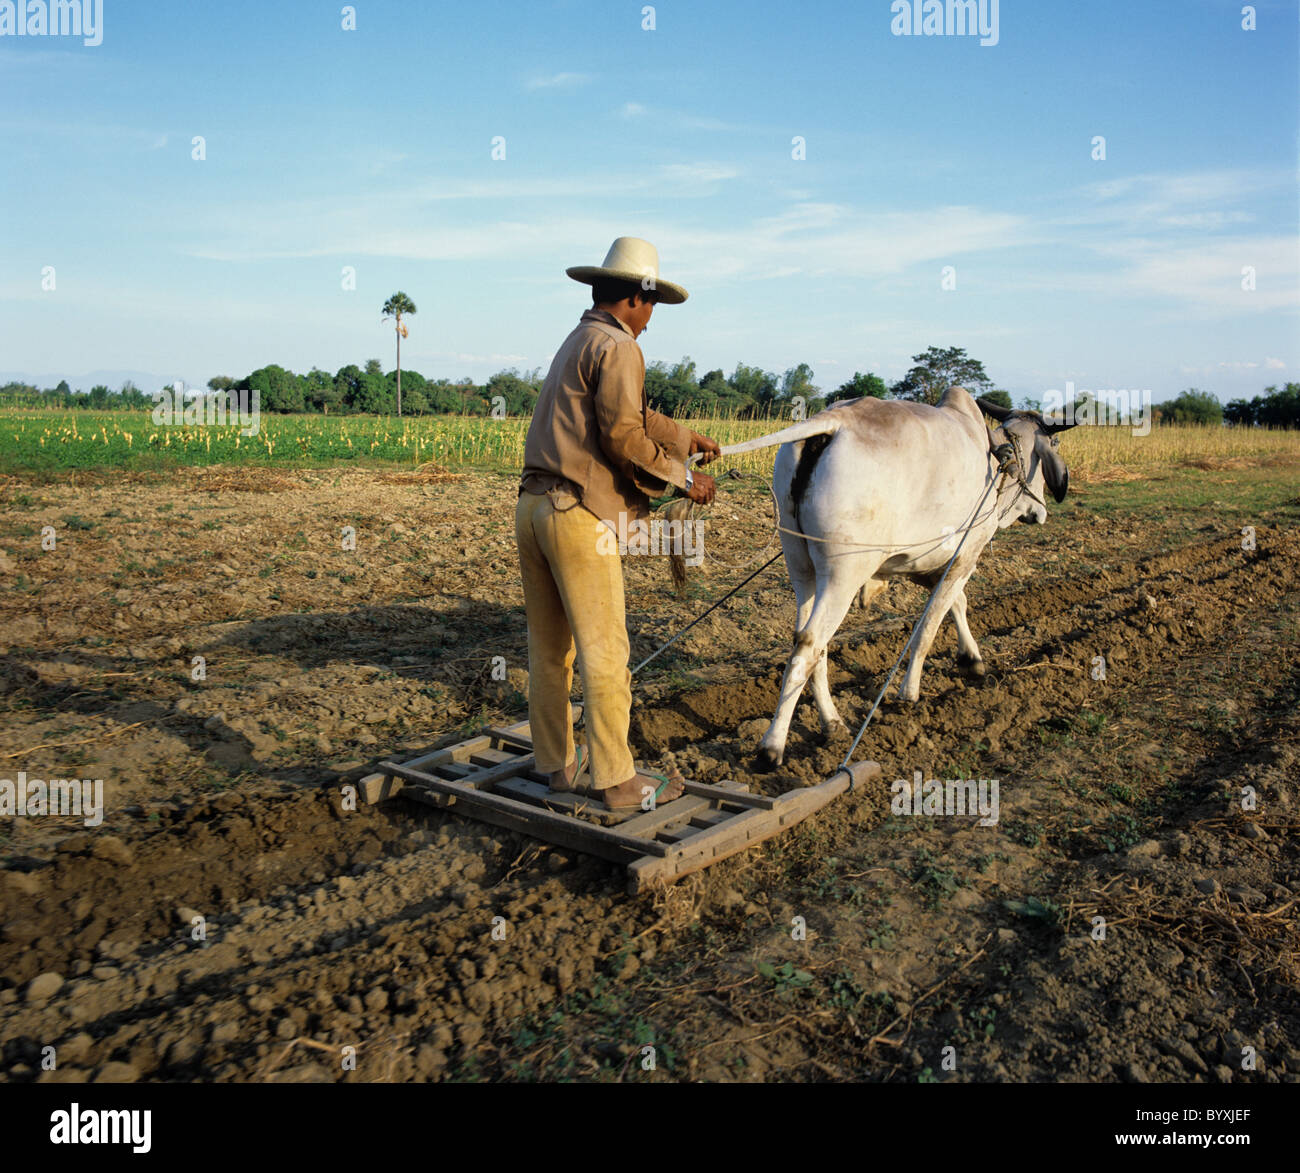 Filipino farmerbreaking up ploughed field by satanding on a small press behind a Brahman ox - Stock Image